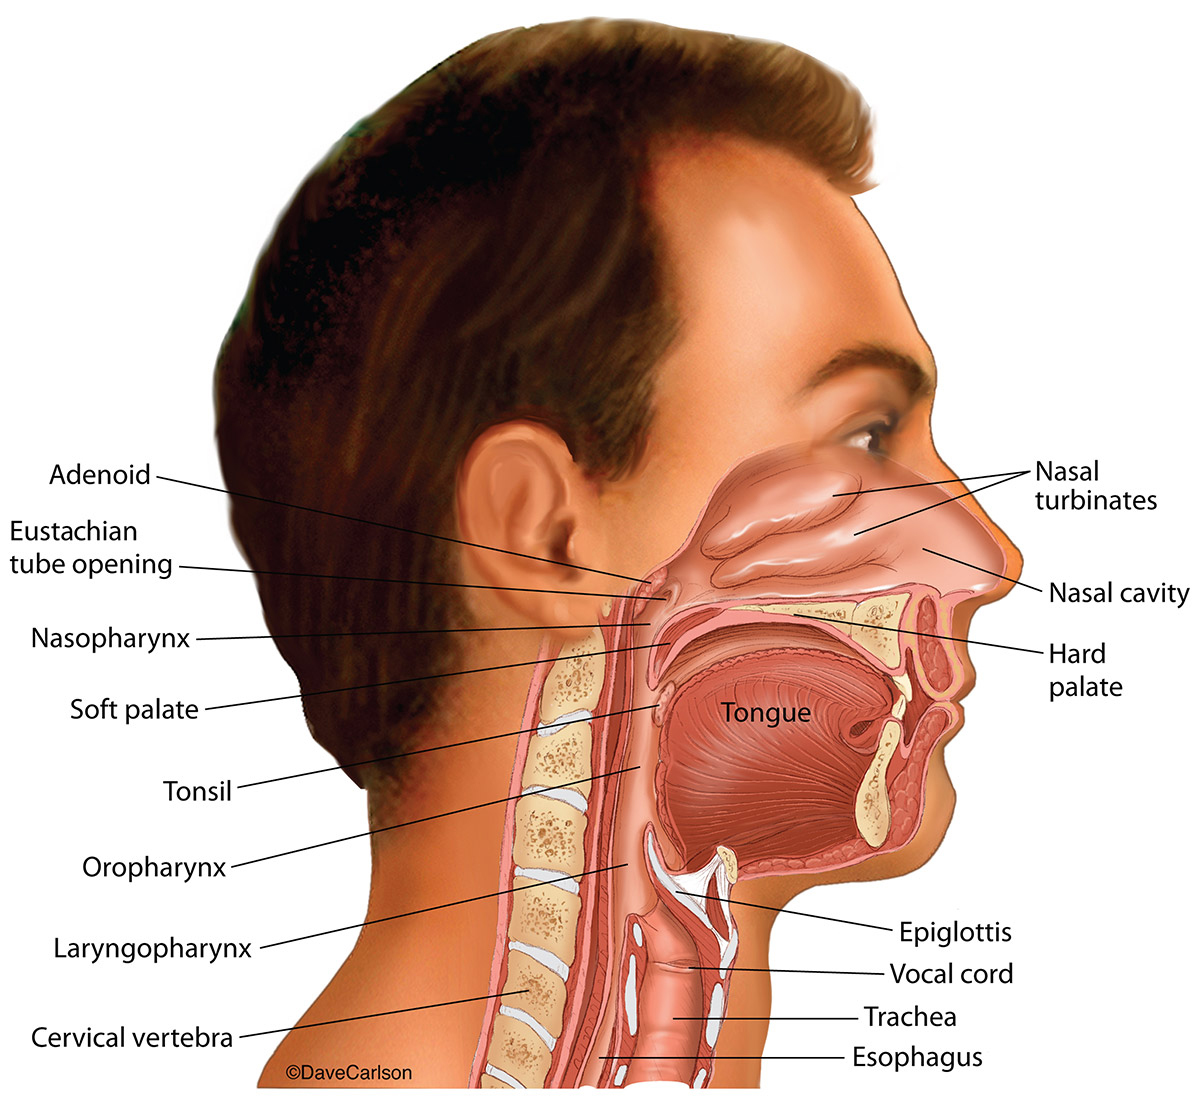 illustration, nasal cavities, oral cavities,  laryngeal cavities, photo